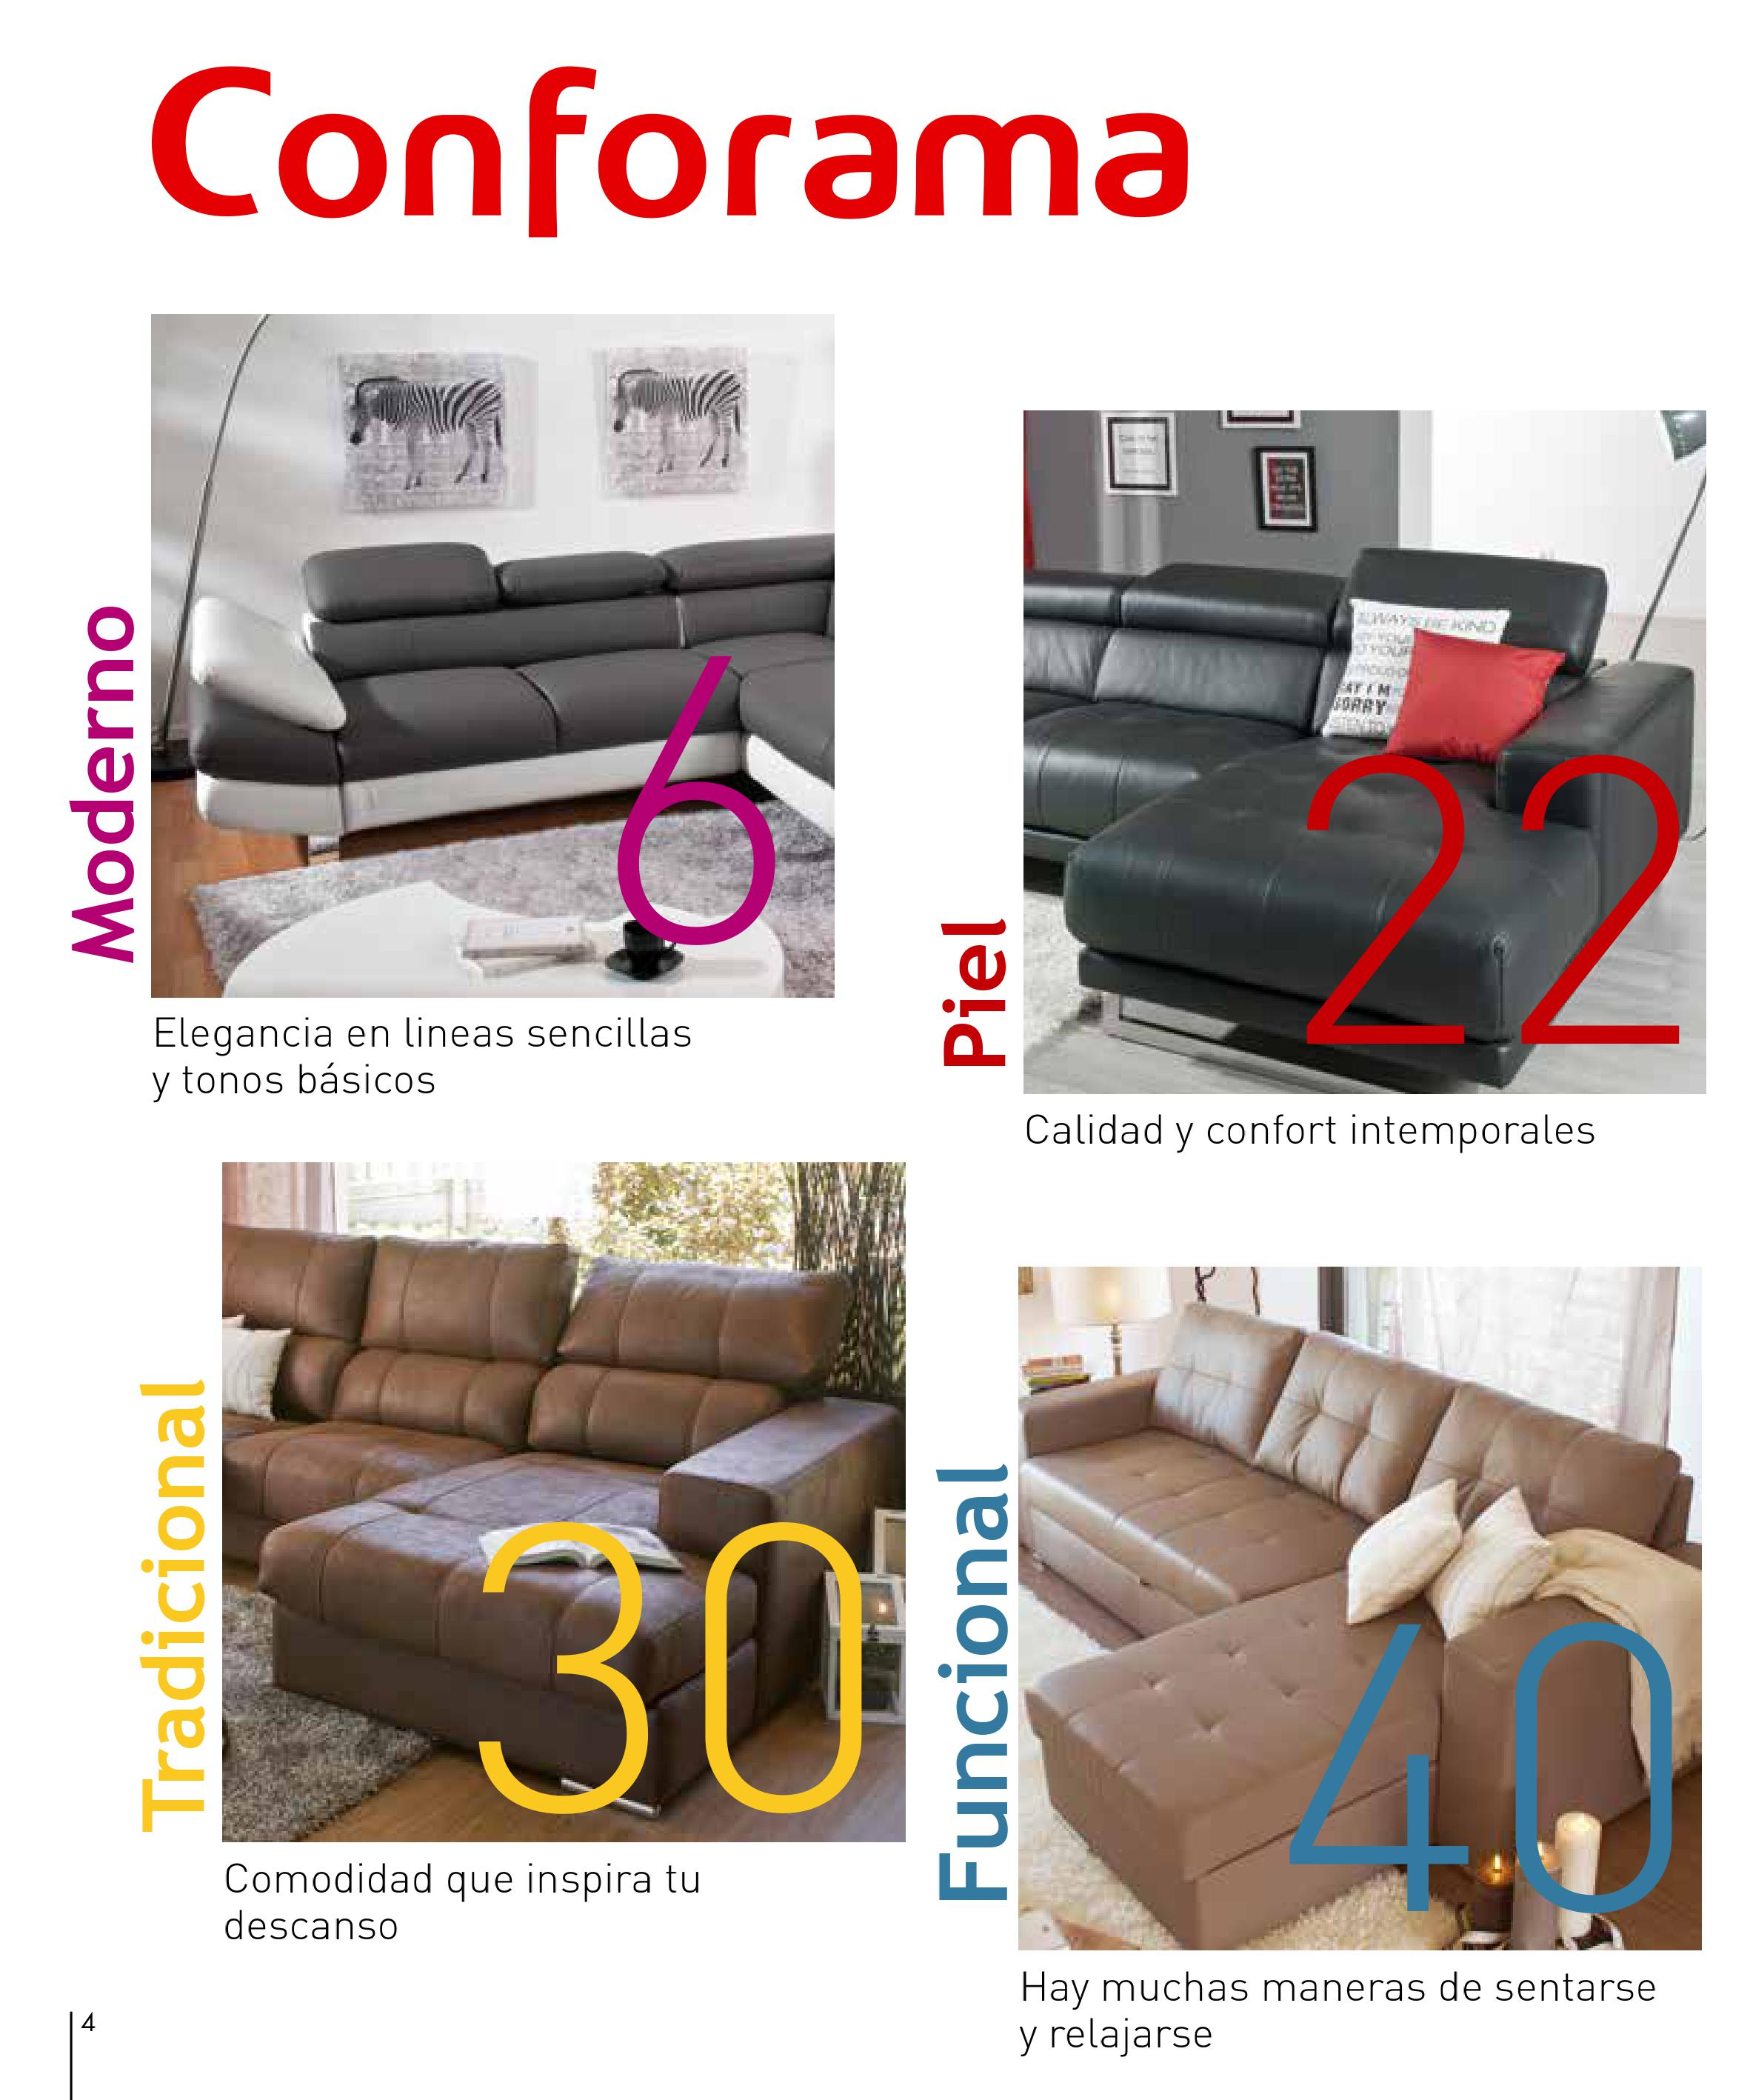 Sofas conforama 20154 for Sofas conforama catalogo